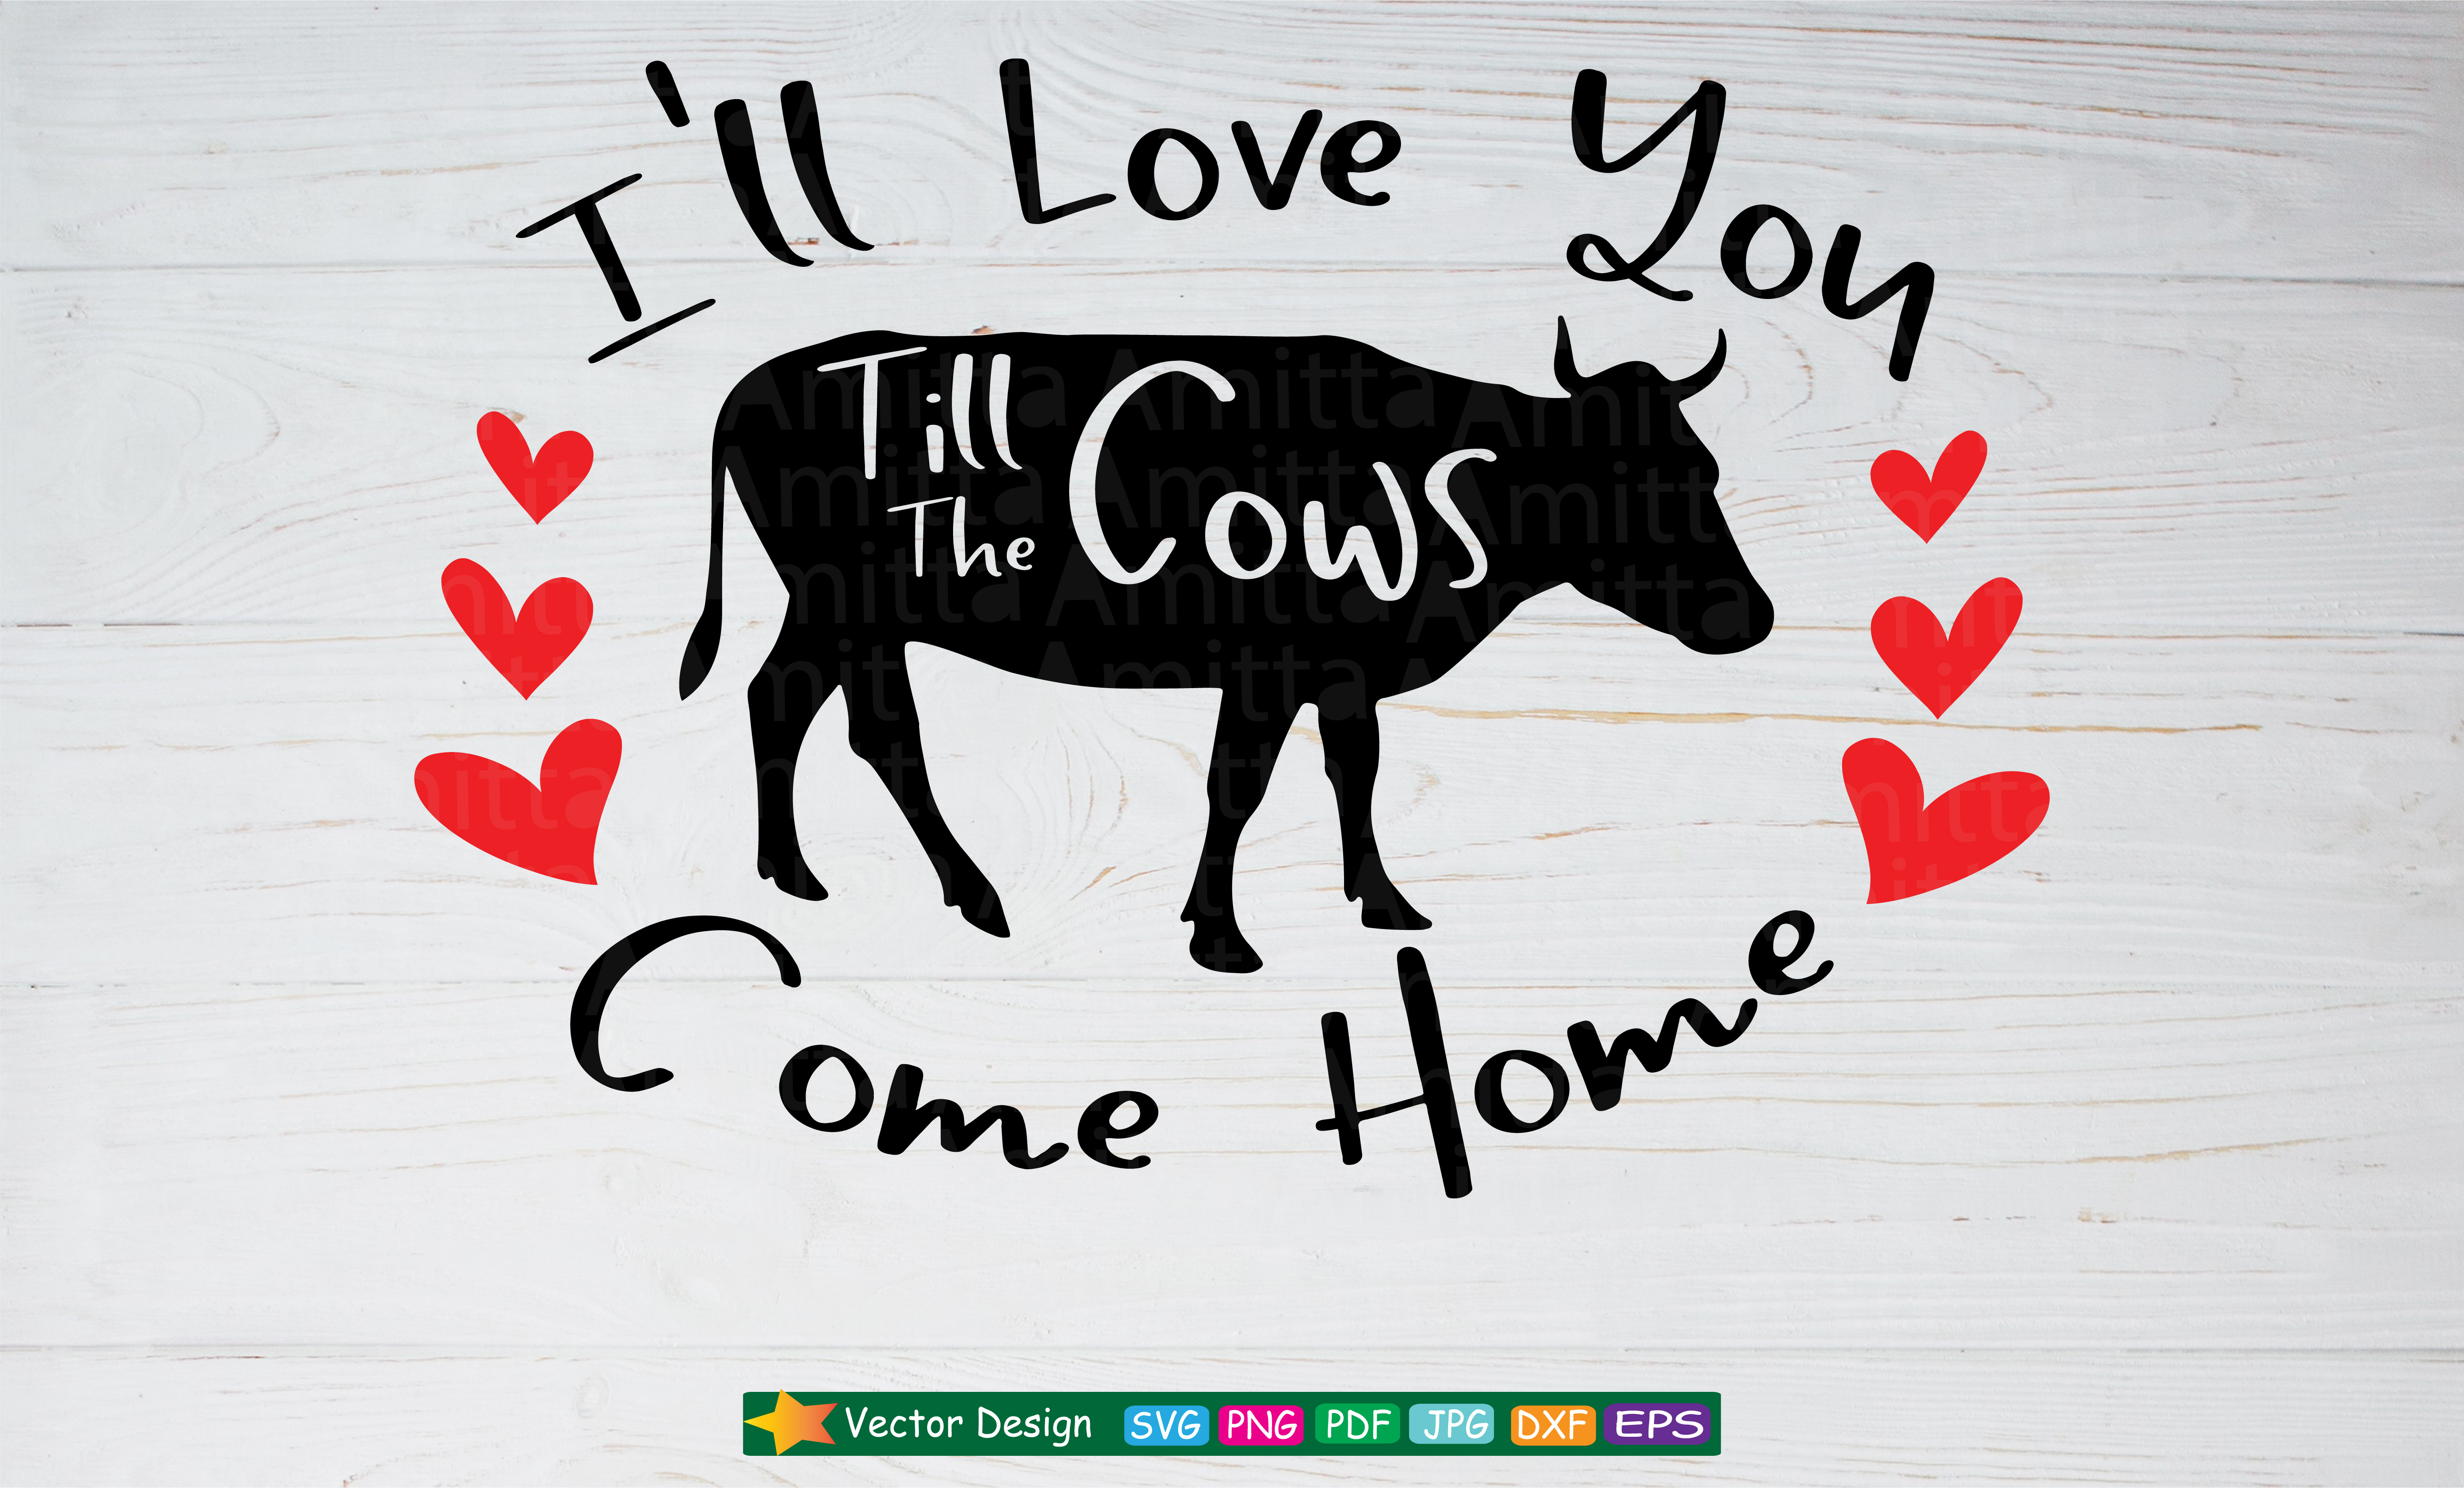 I Ll Love You Till The Cows Come Home Svg Graphic By Amitta